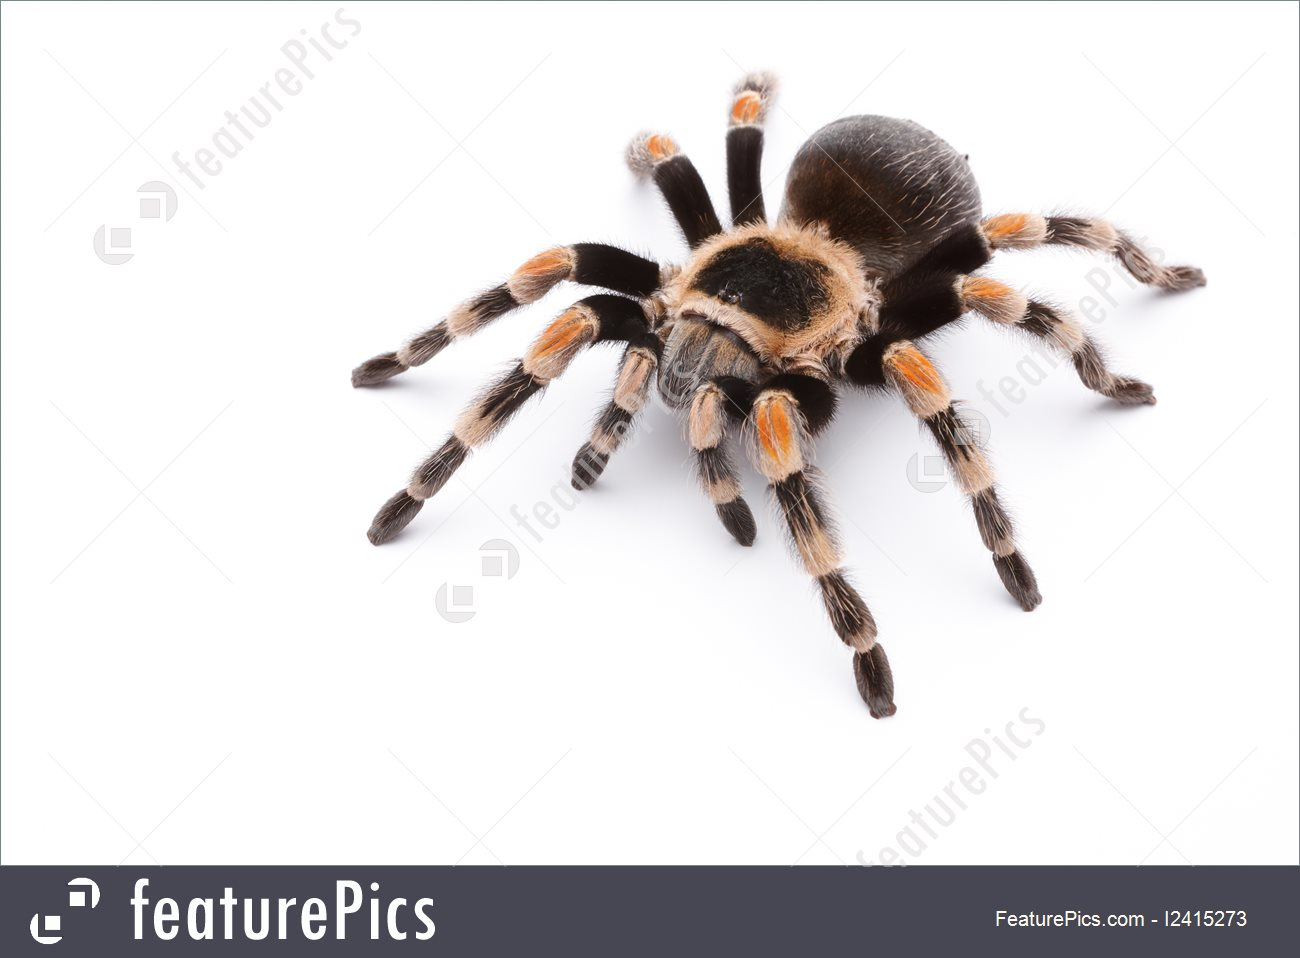 Picture Of Red Knee Tarantula.